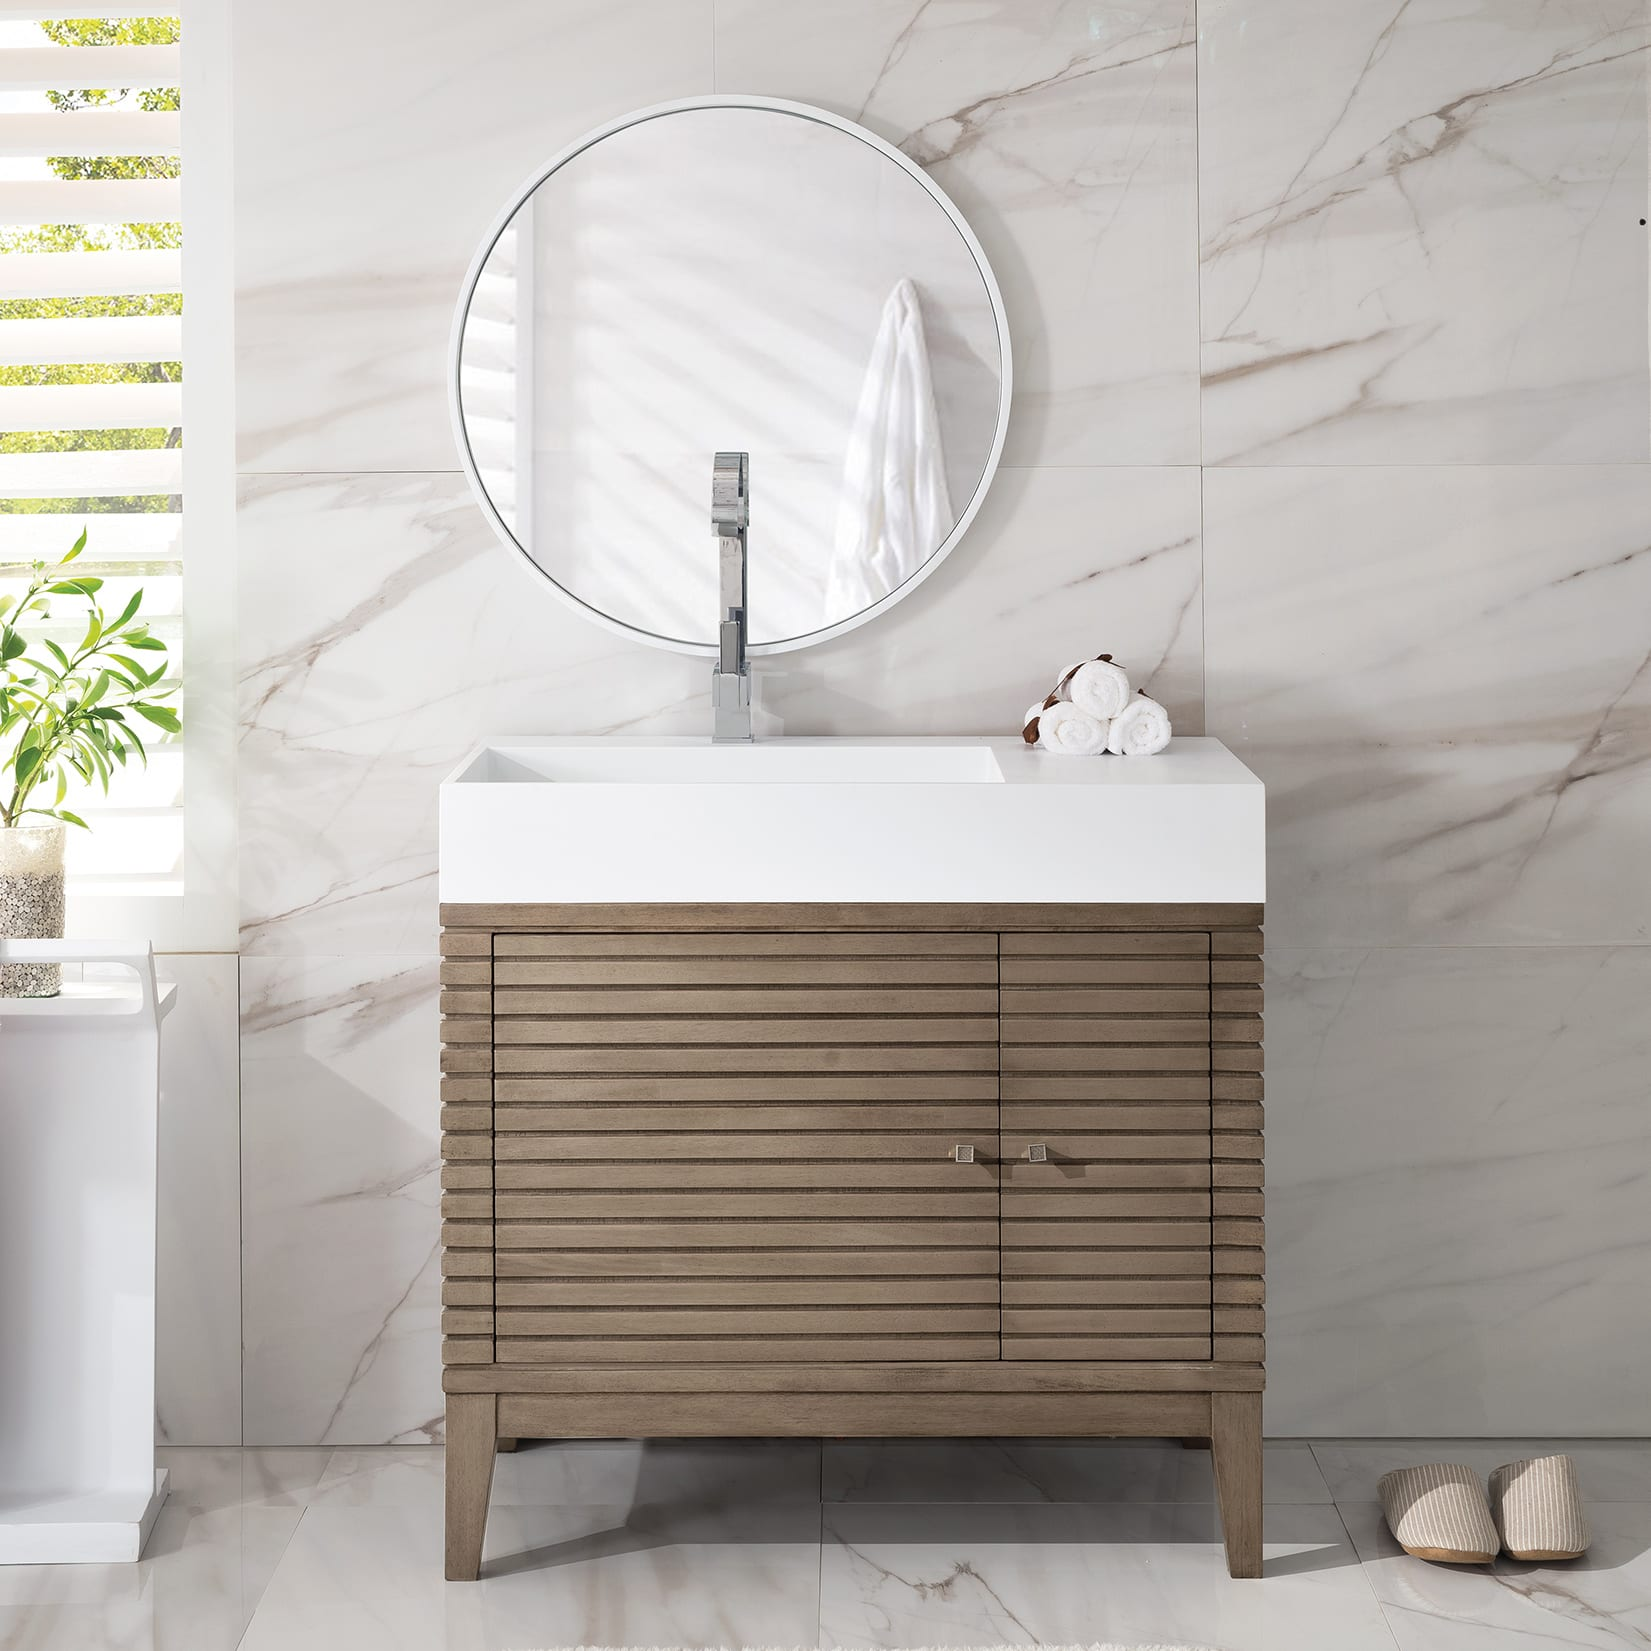 James Martin 210 V36 Linear 35 1 2 Bathroom Vanity Qualitybath Com